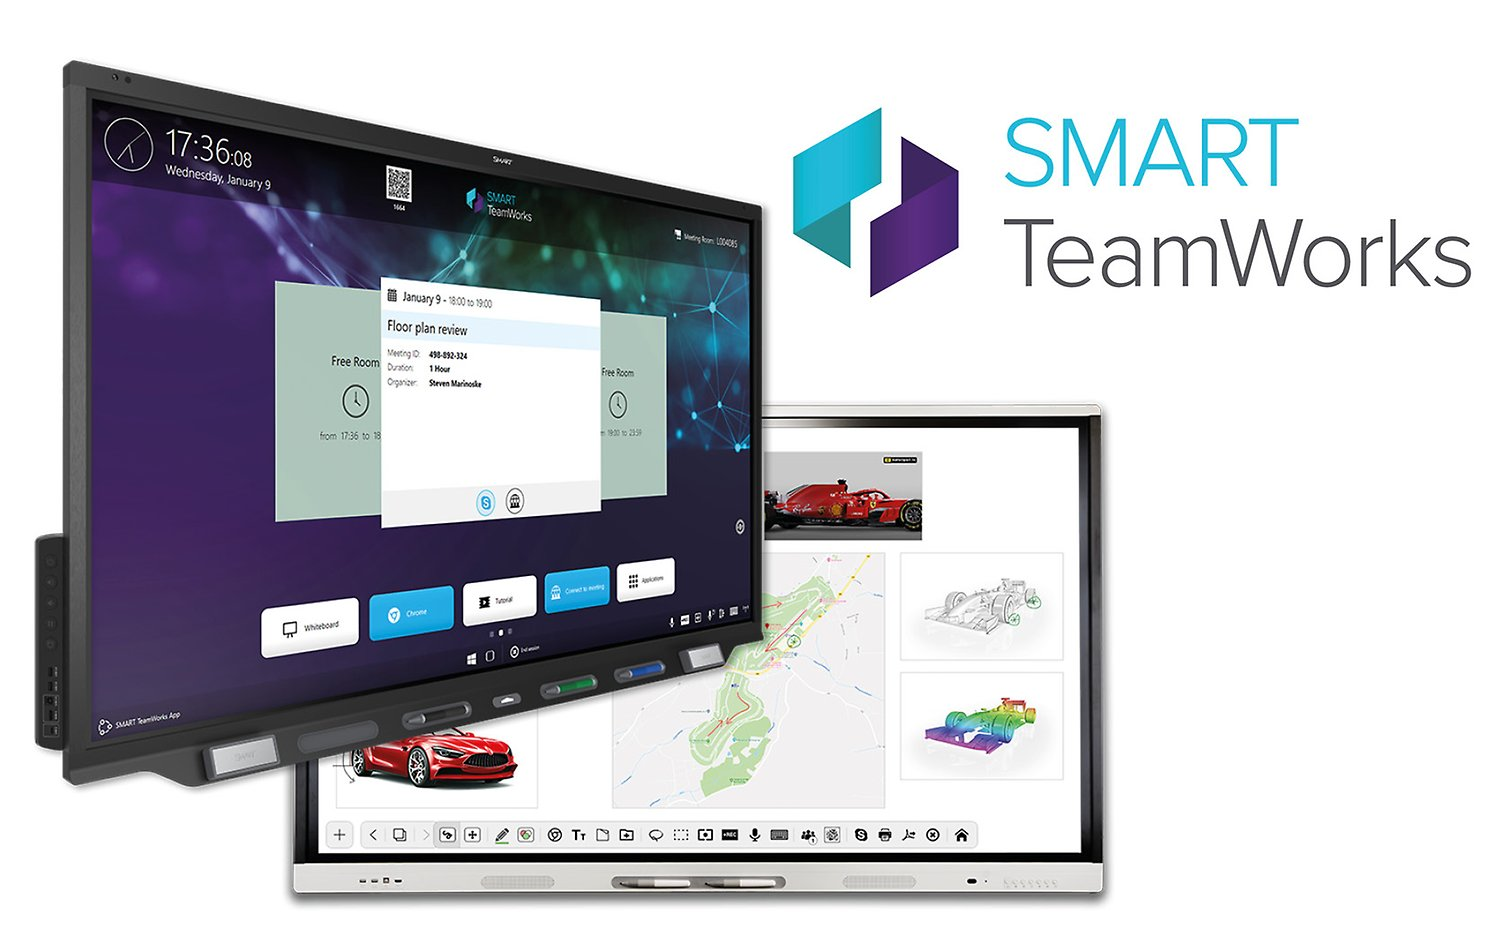 SMART TeamWorks mjukvara